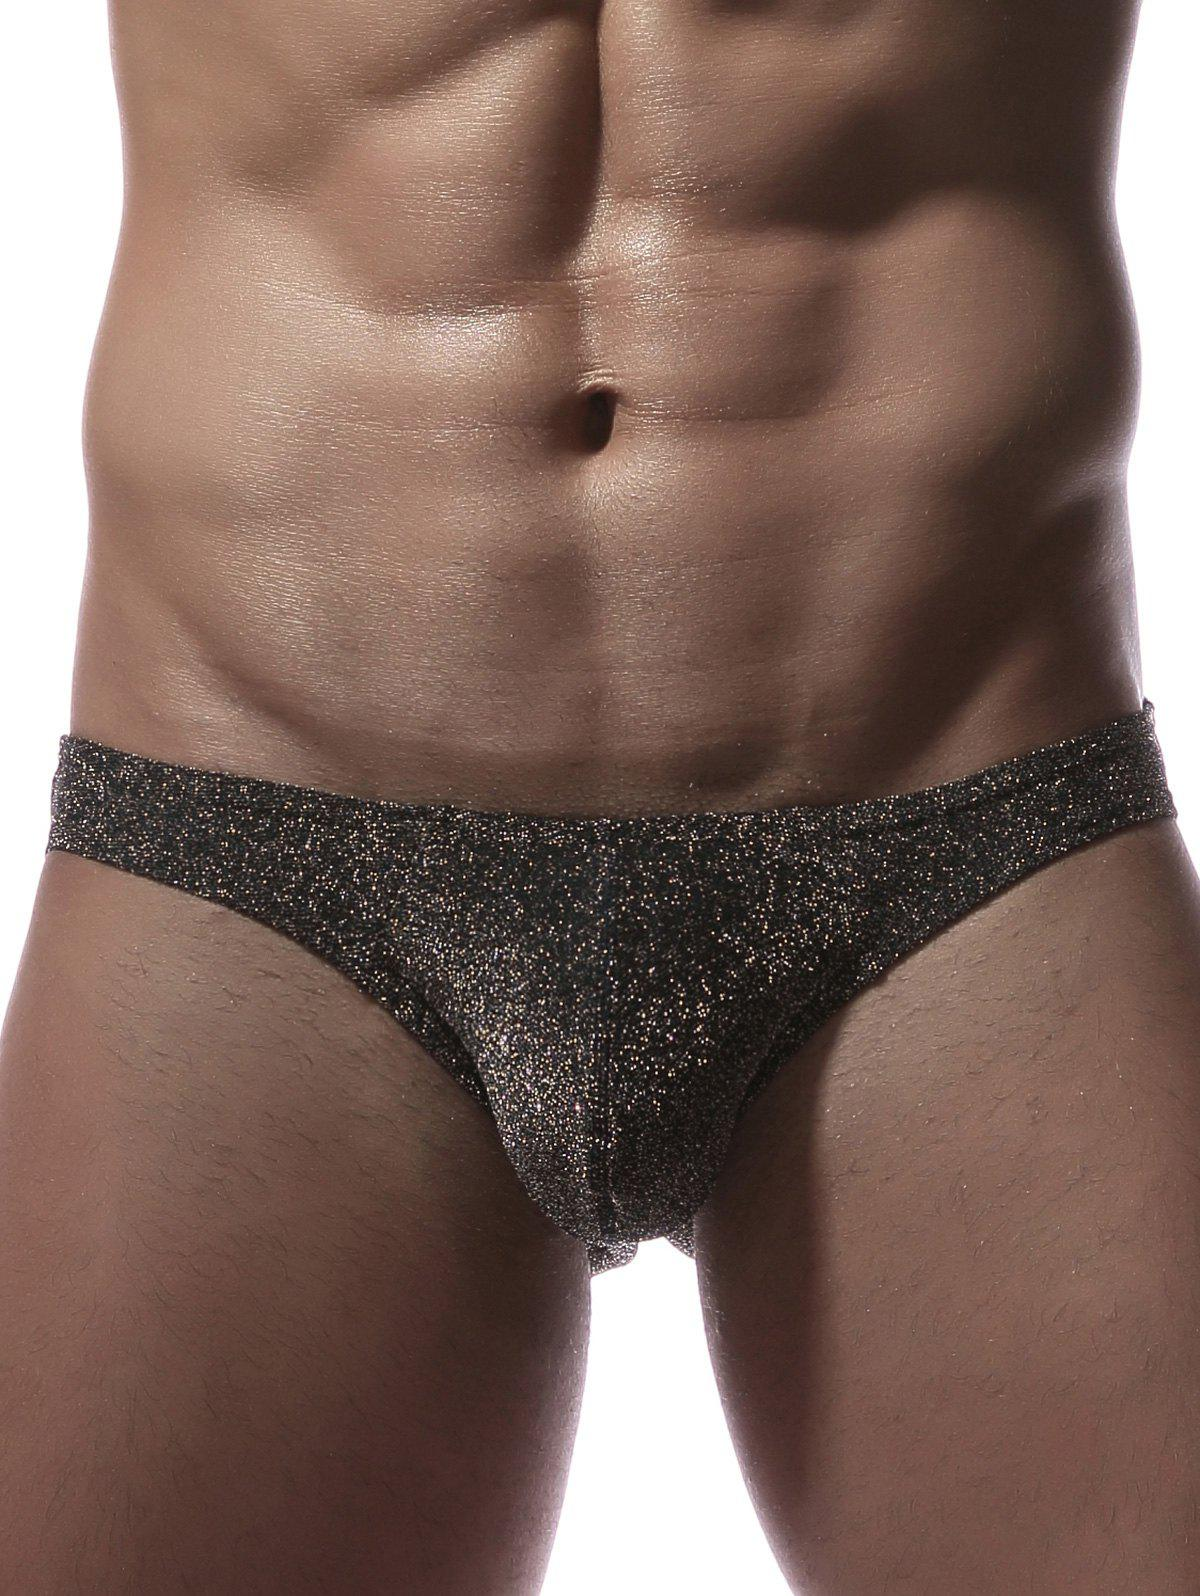 Stretchy Twinkling U Pouch Briefs - SILVER M